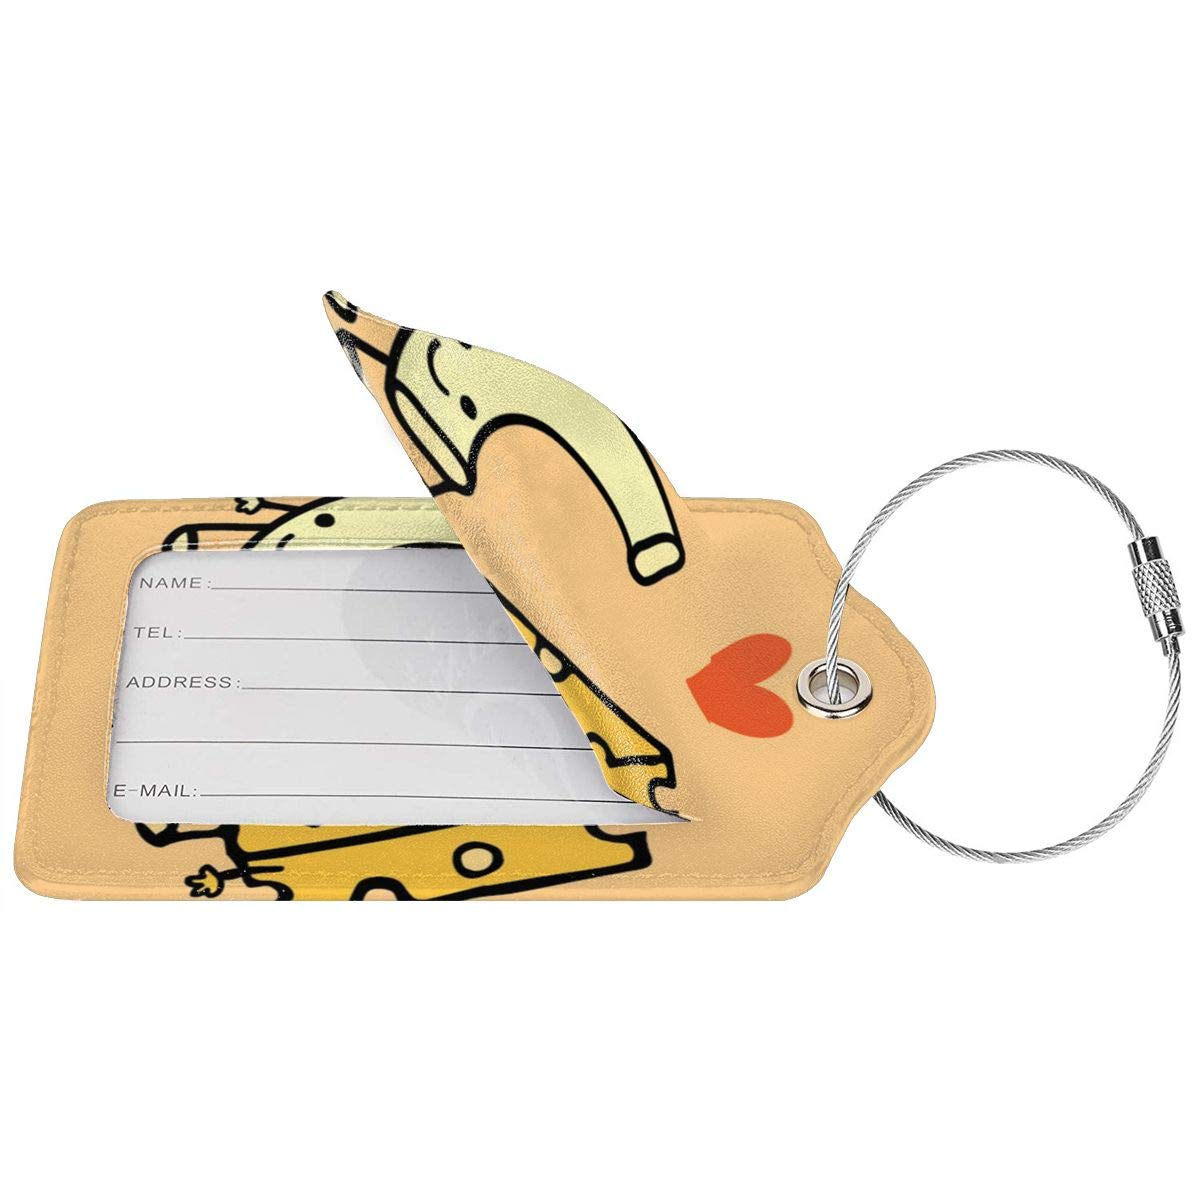 GoldK Macaroni and Cheese Leather Luggage Tags Baggage Bag Instrument Tag Travel Labels Accessories with Privacy Cover